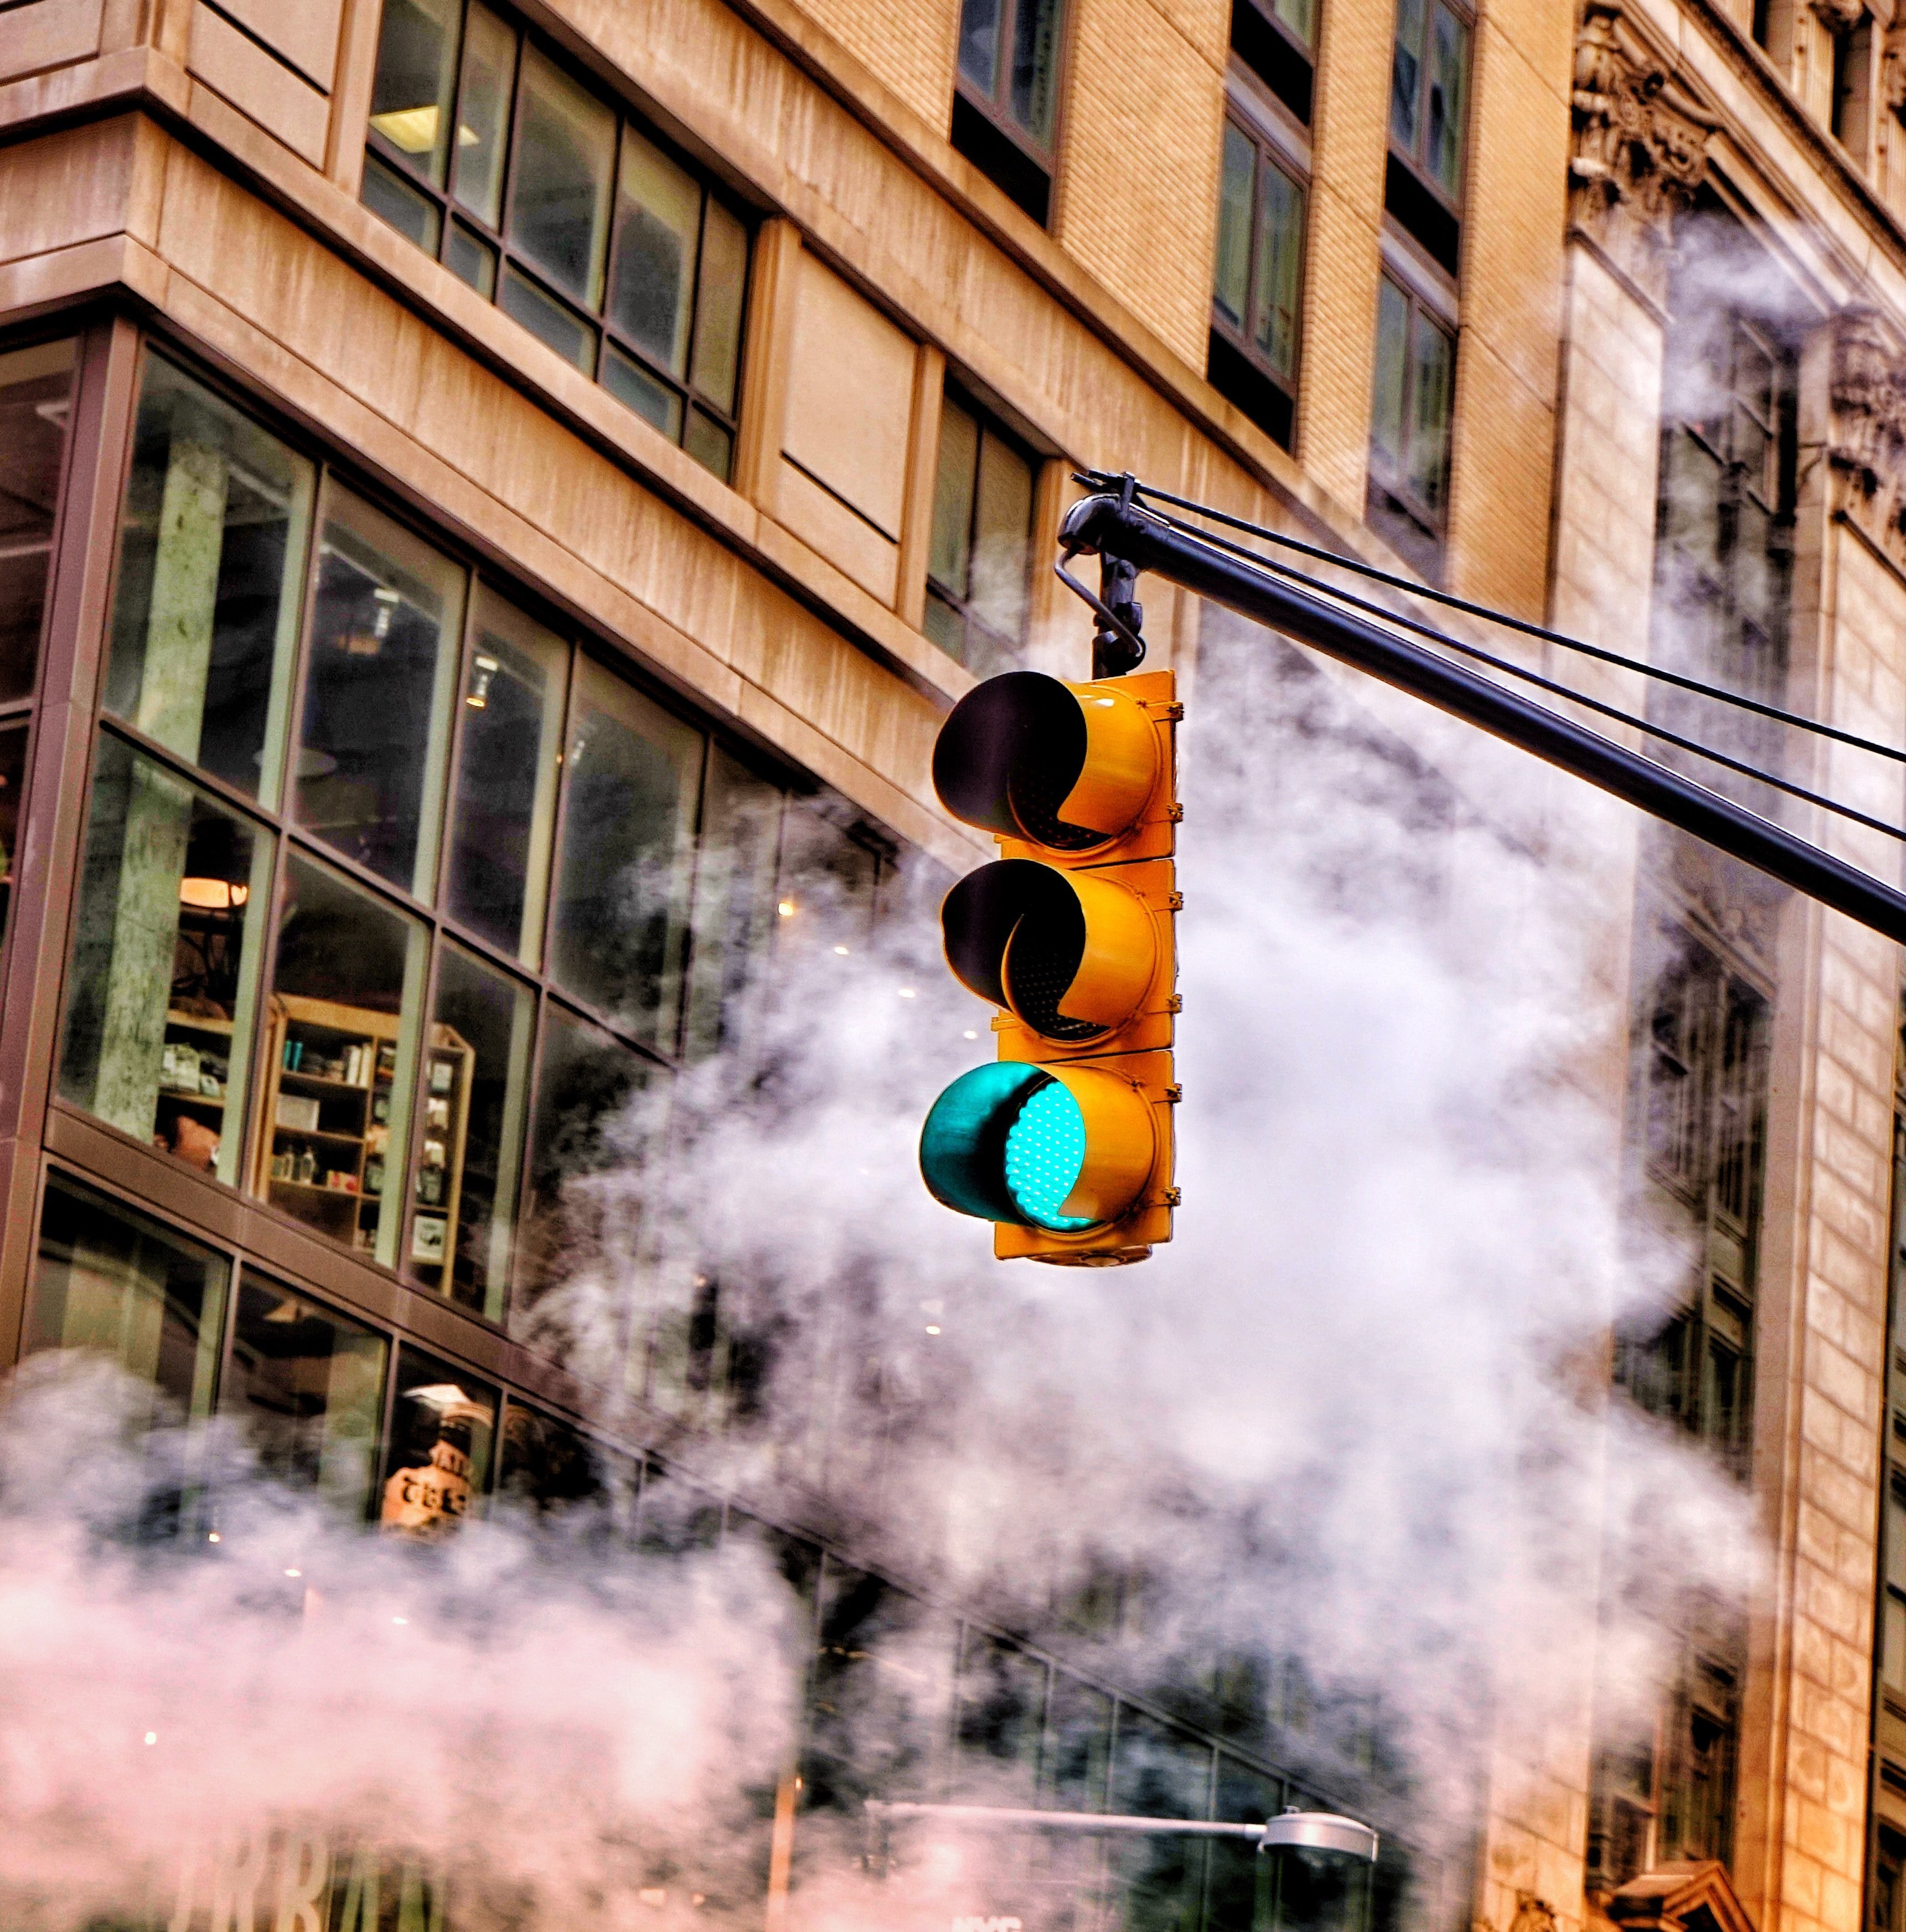 A traffic signal. | Source: Unsplash